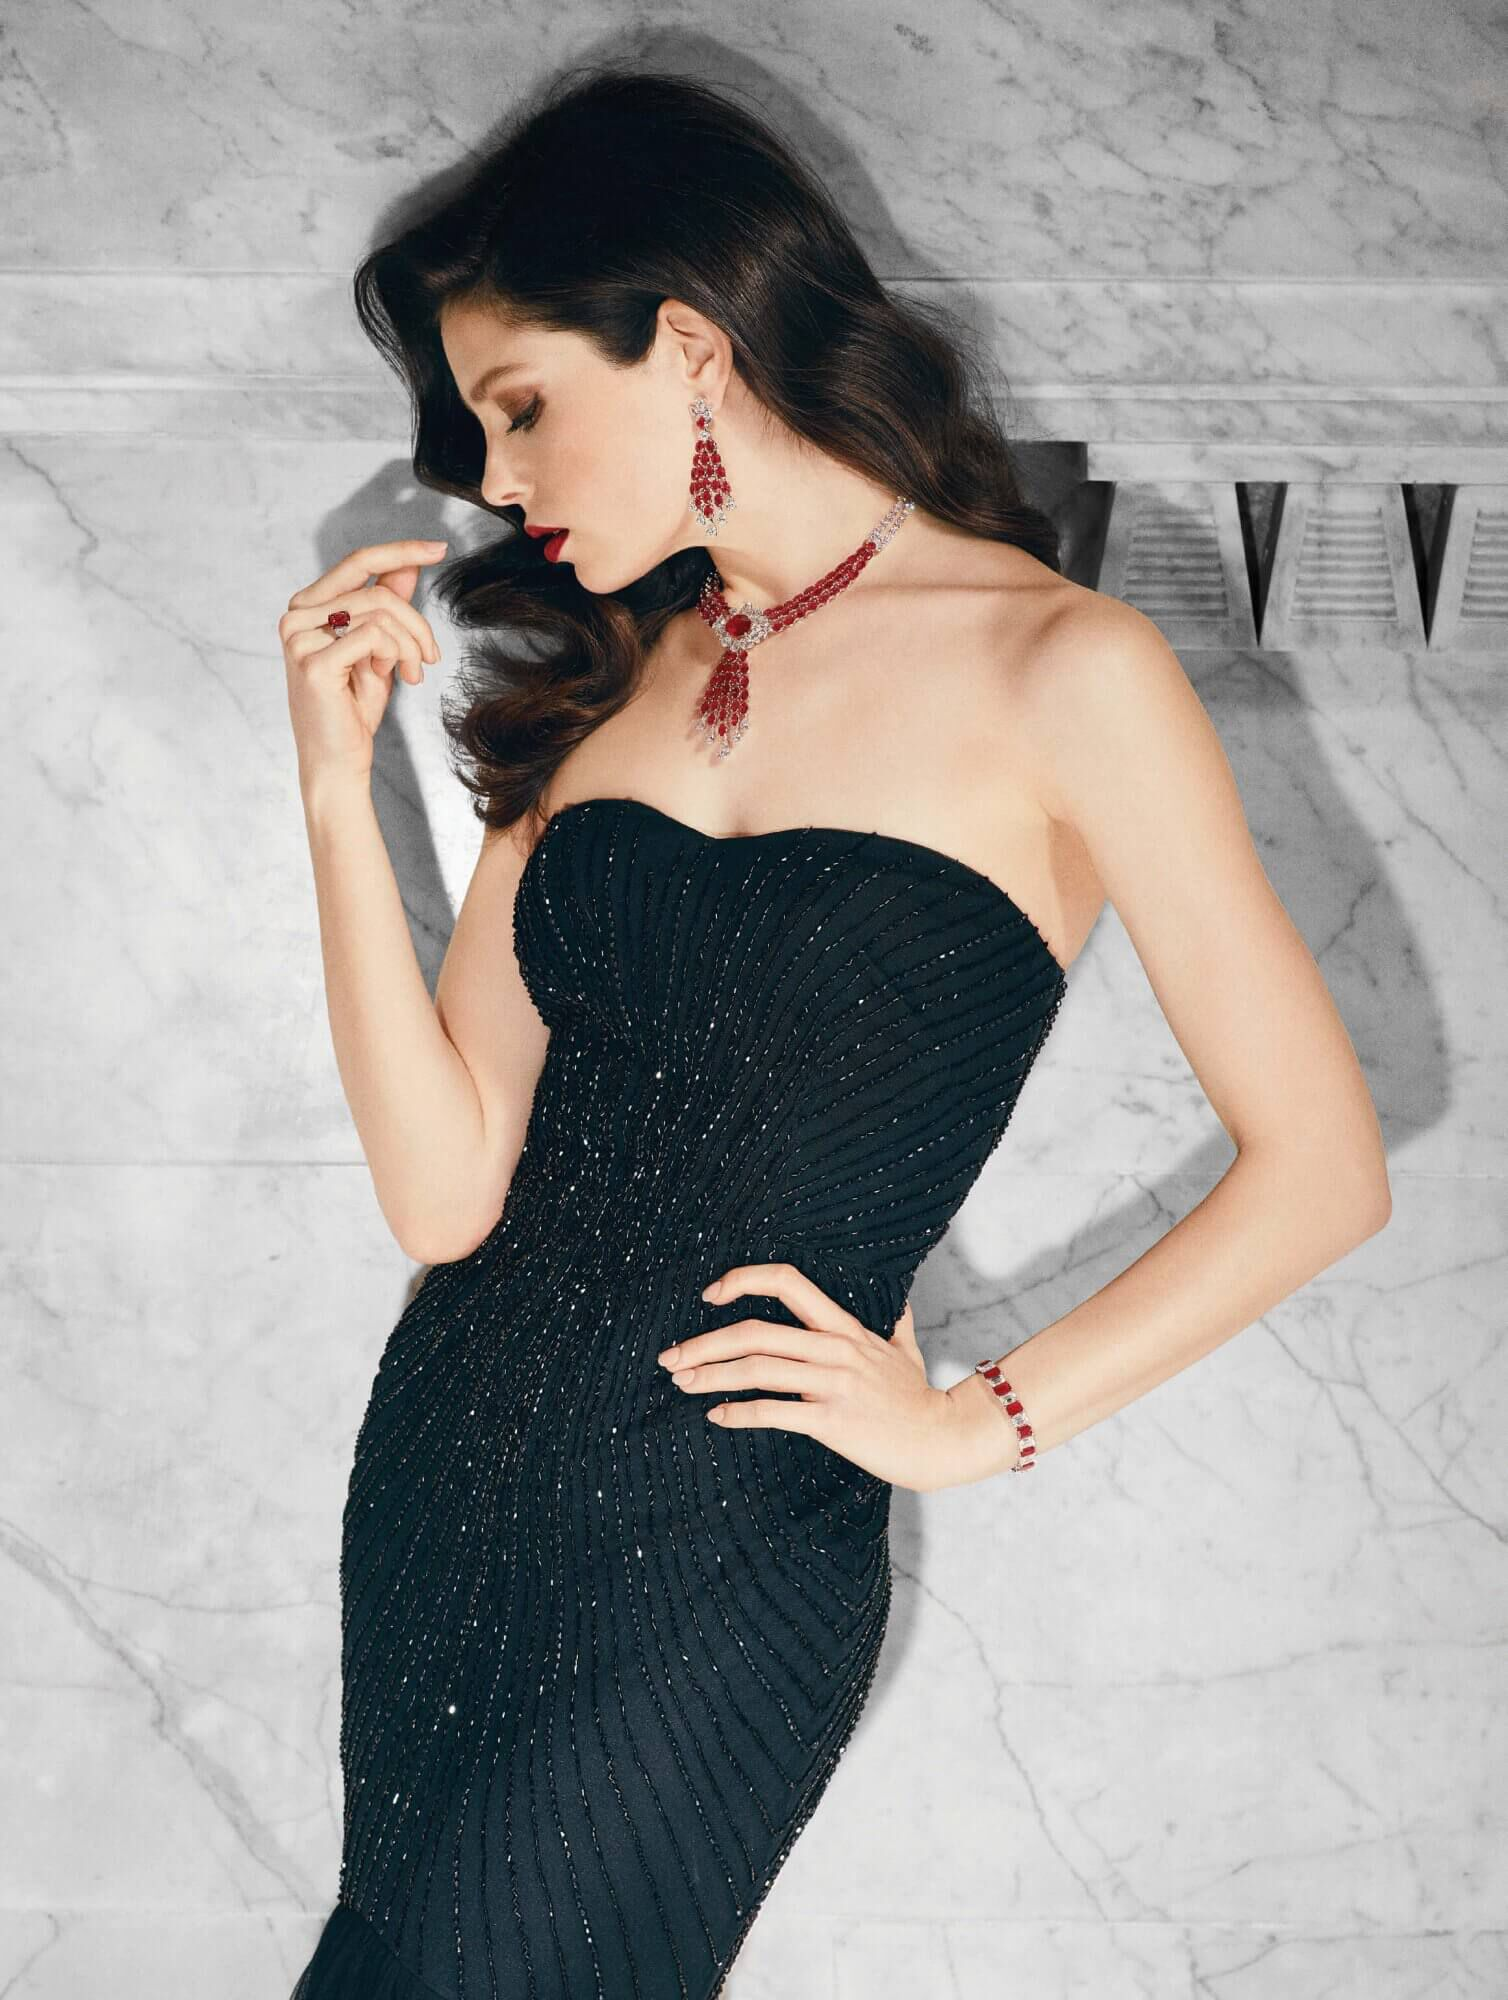 Model wears Graff Diamonds Lights Camera Action Article 6.01 carat Vivid Red oval Mozambique ruby and diamond ring Ruby and diamond earrings and Ruby and diamond necklace and bracelet